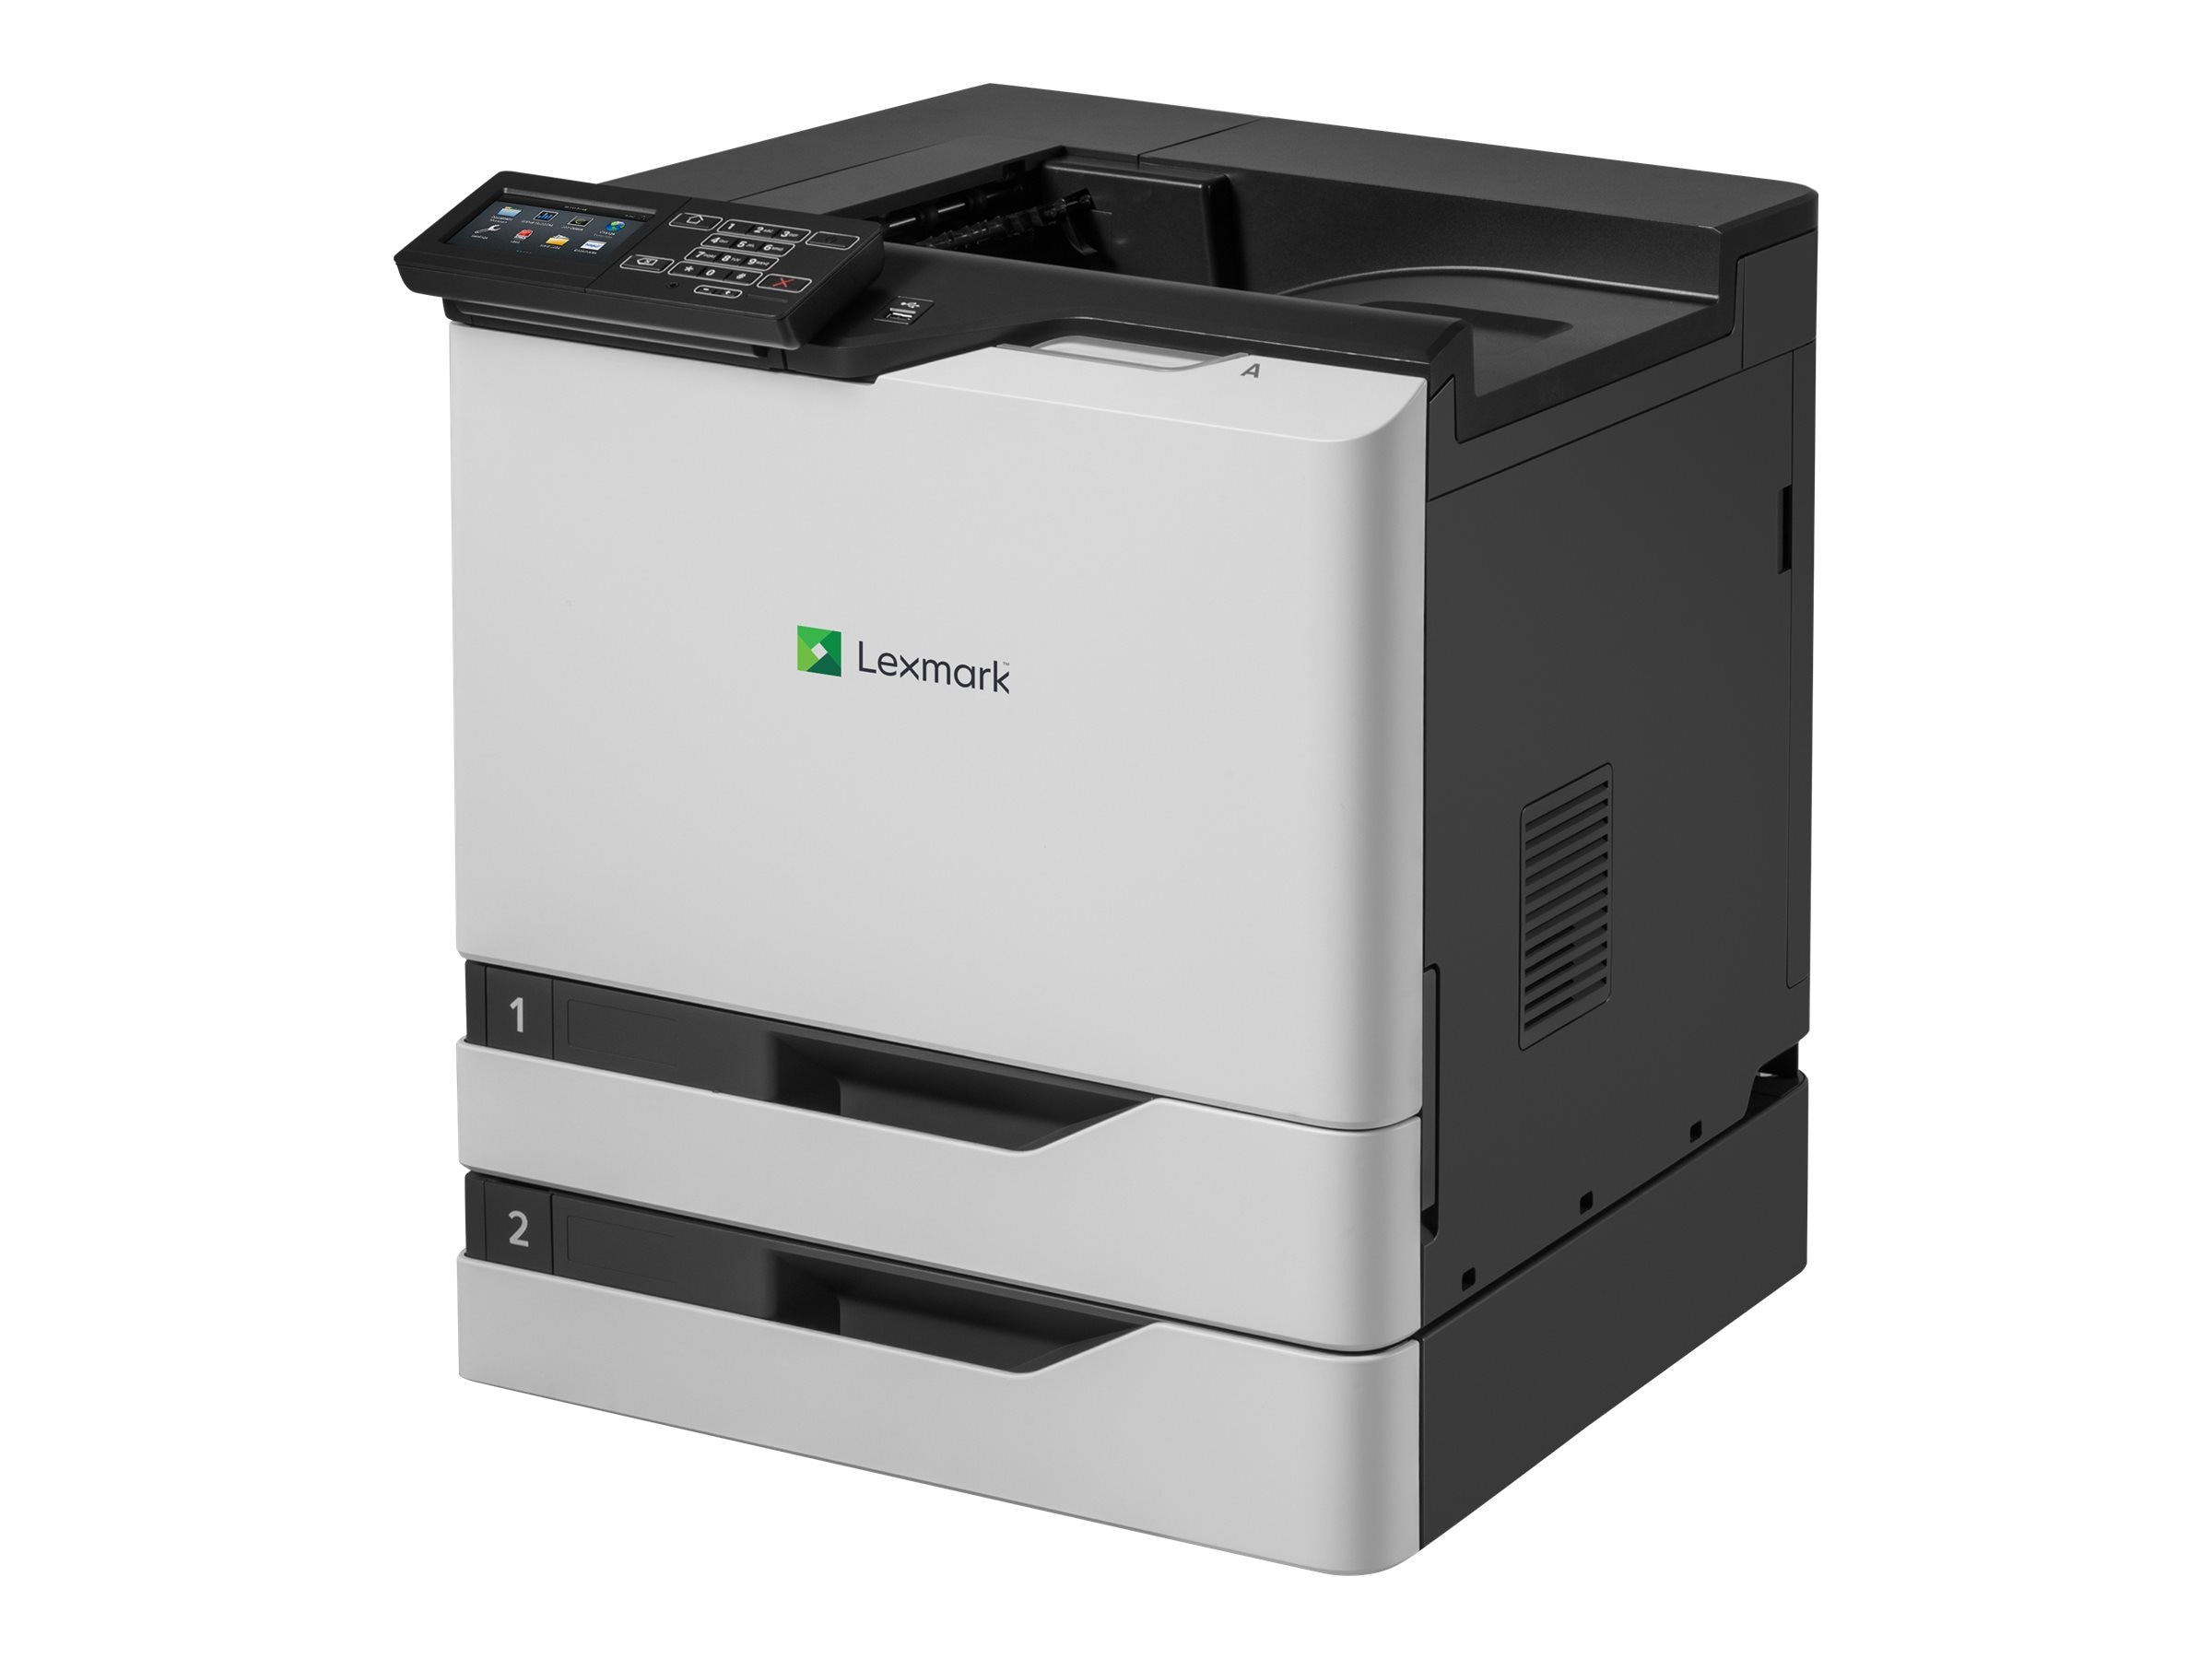 Lexmark CS820dte Color Laser Printer (TAA Compliant)